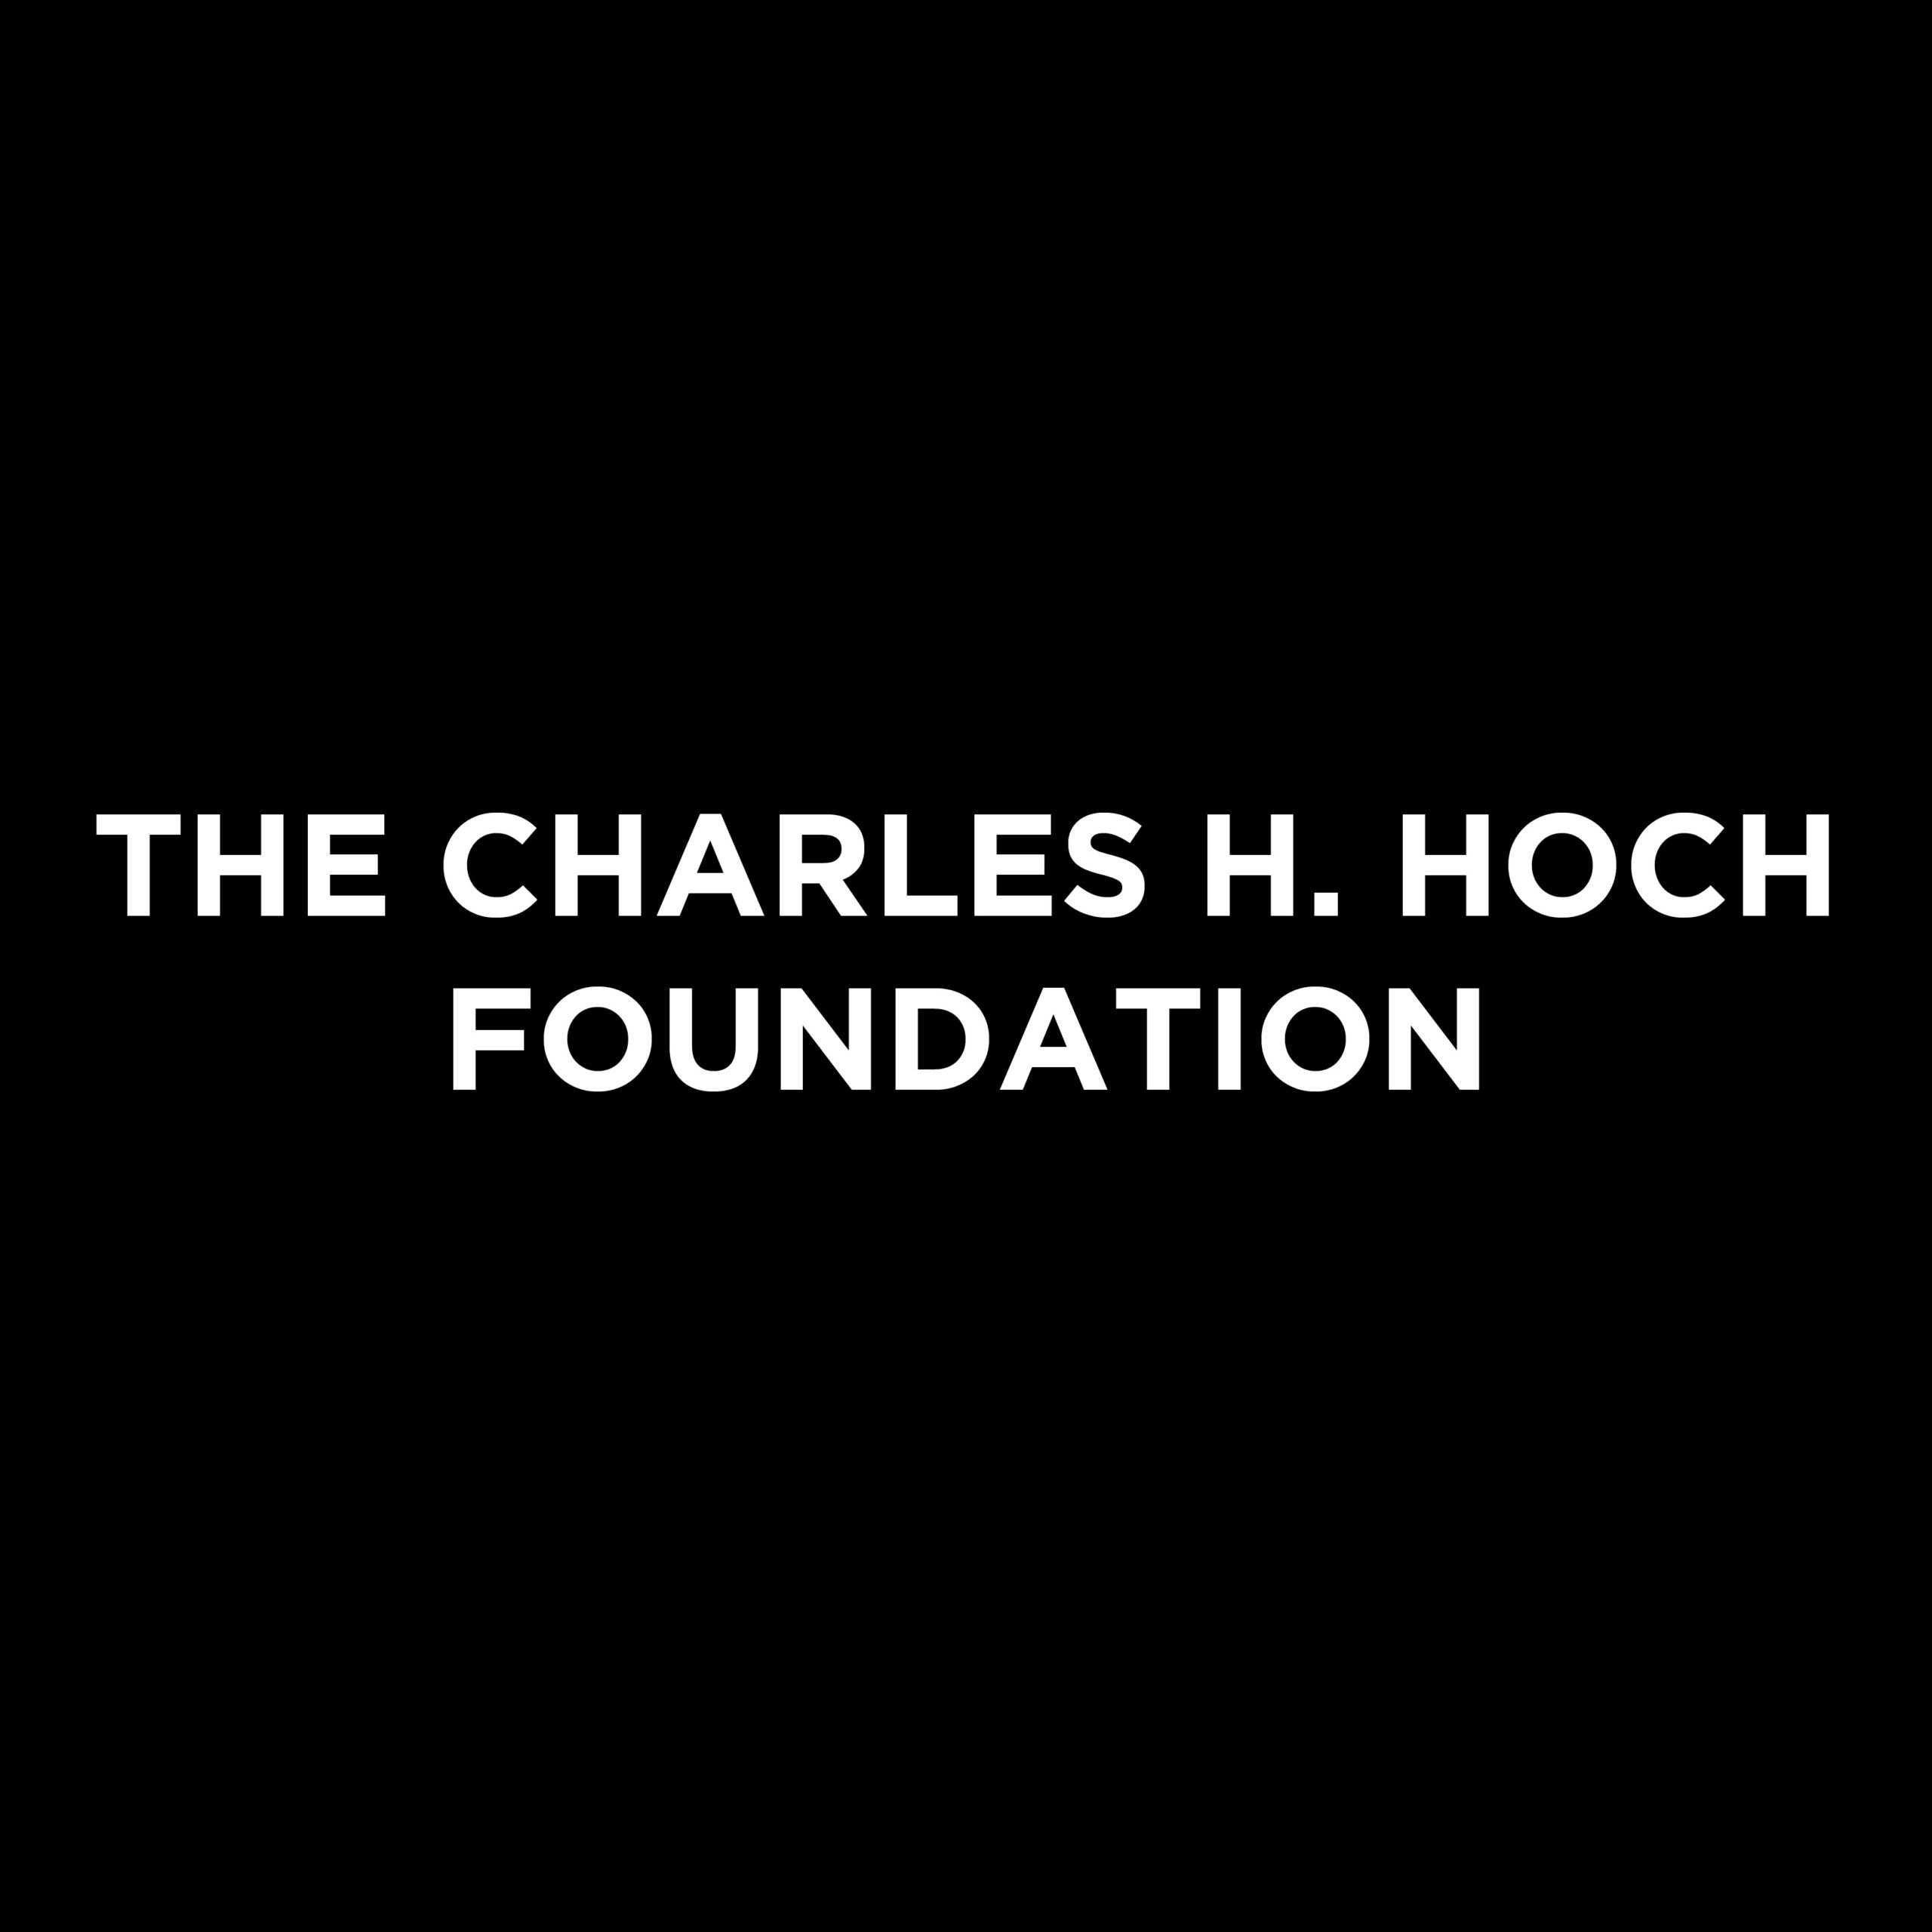 The Charles H. Hoch Foundation